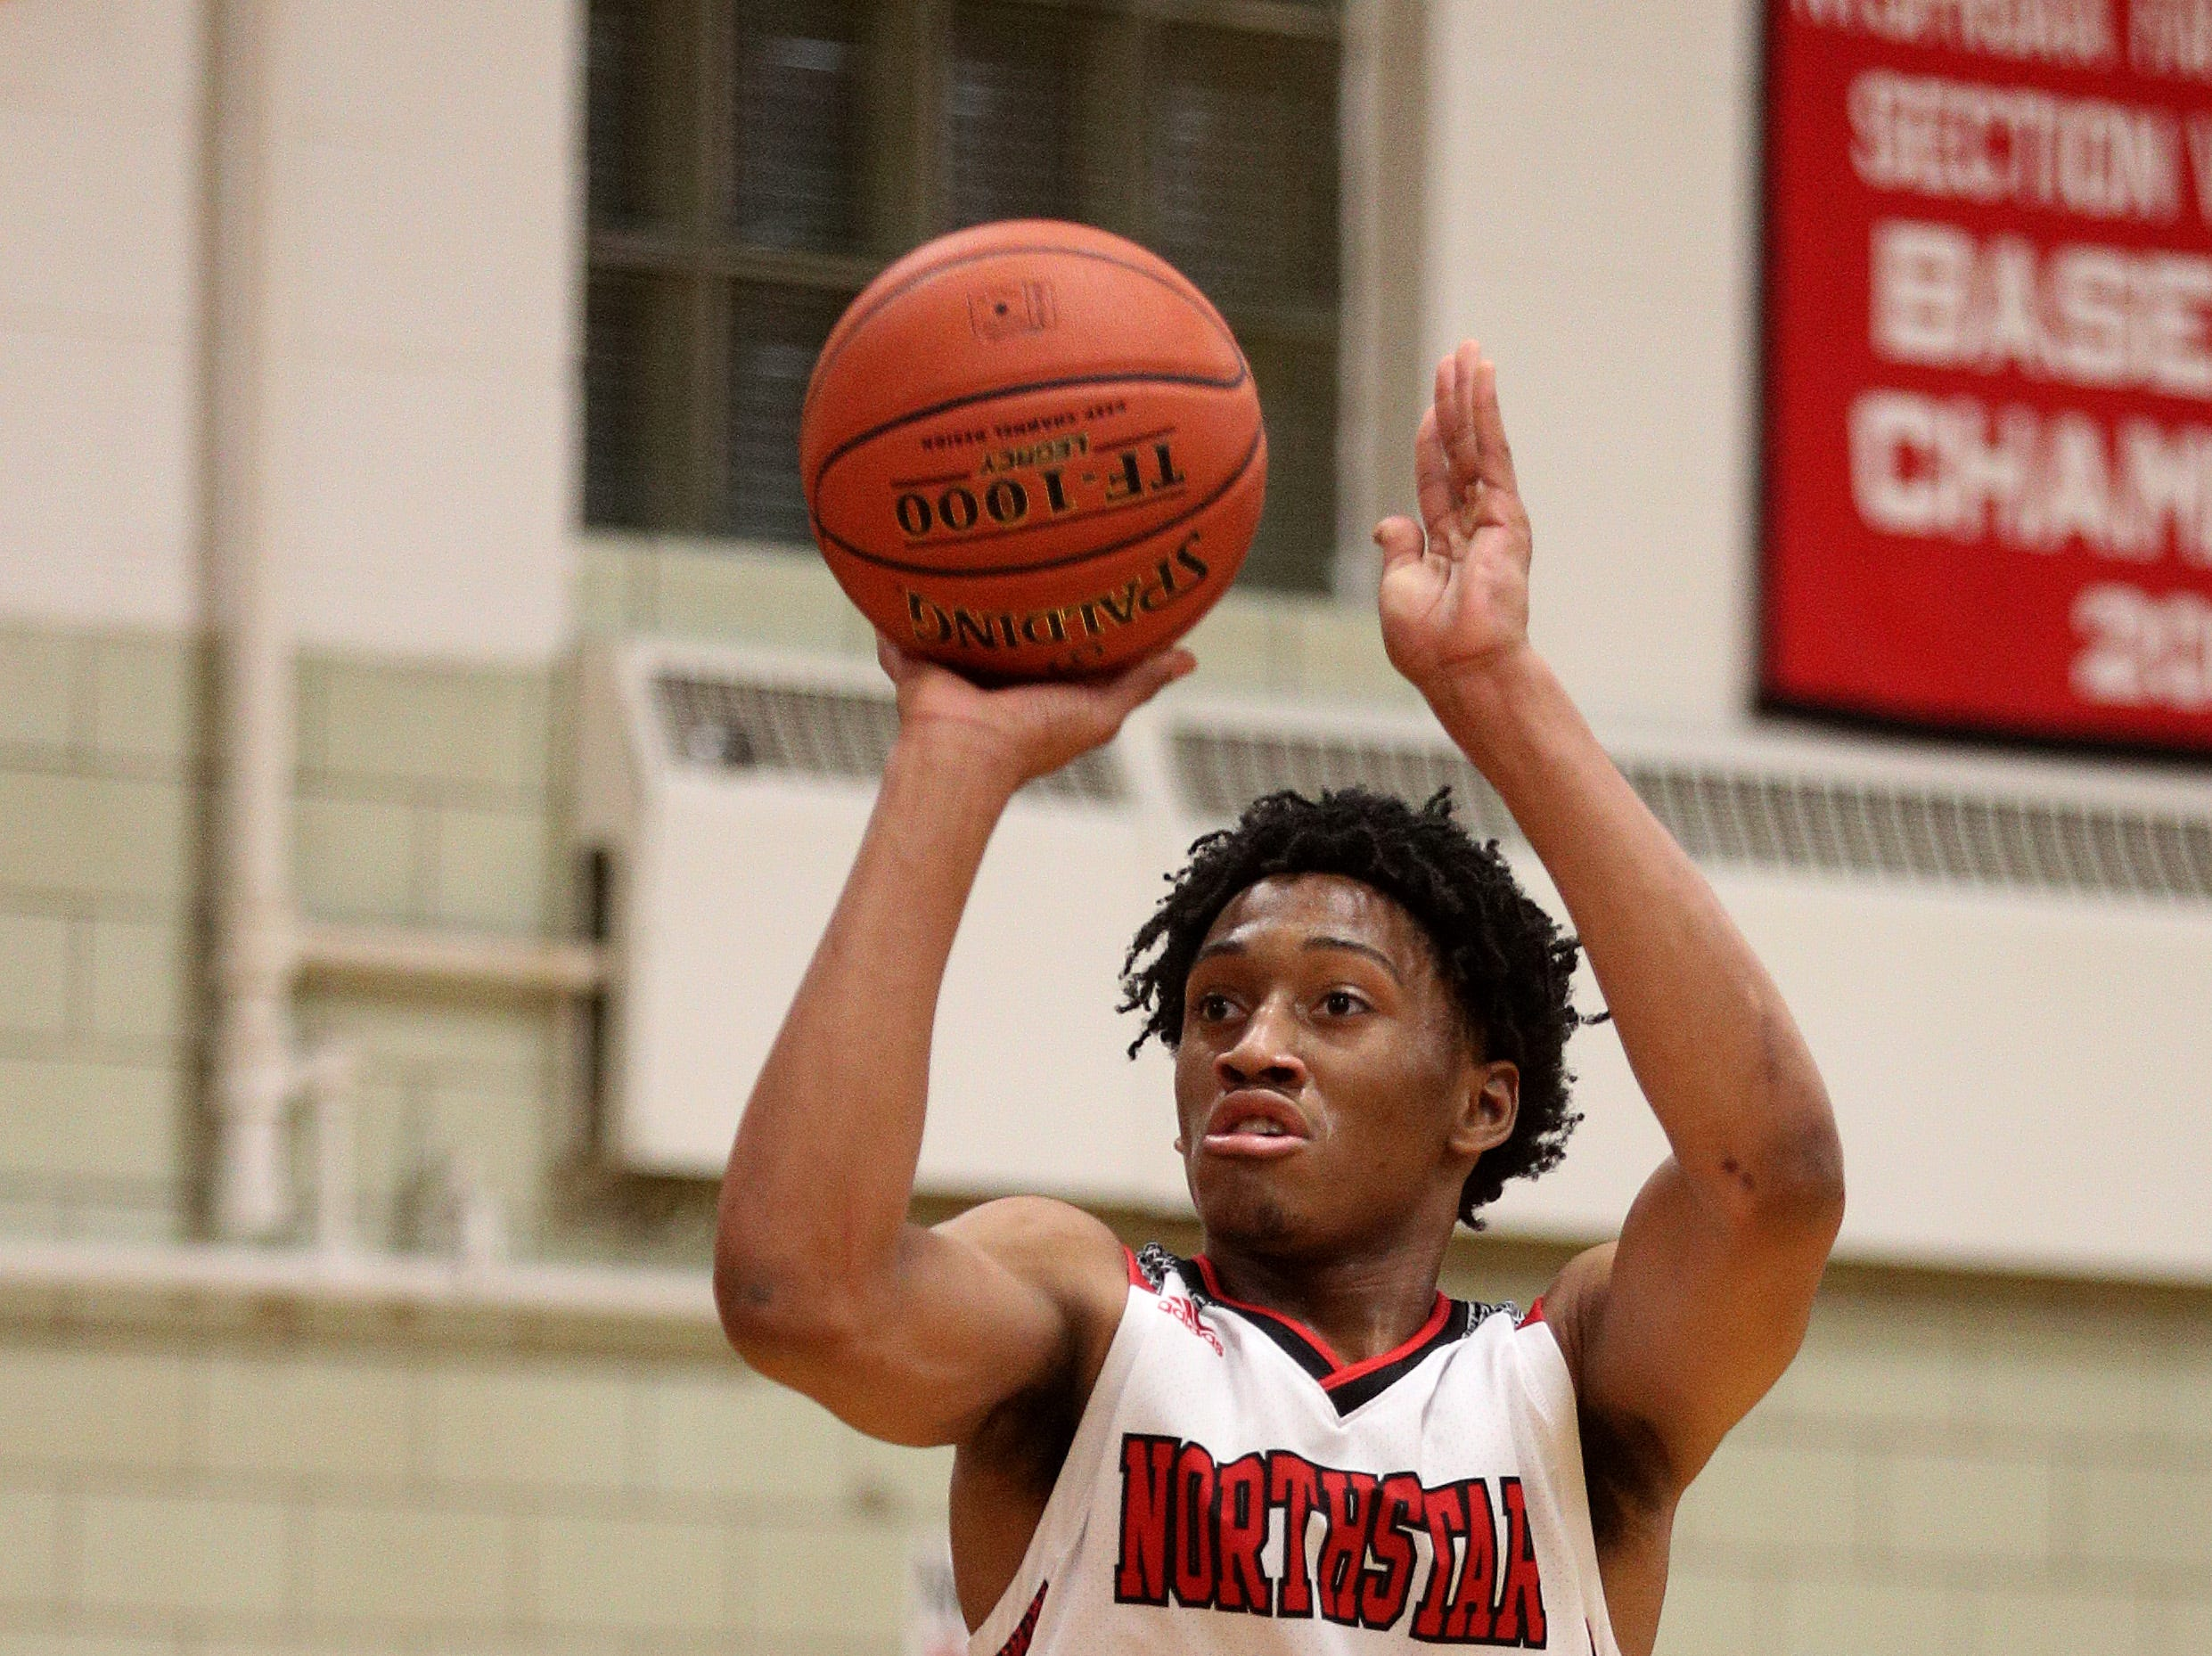 Northstar's Miles Brown pulls up to take a jump shot against Finney.